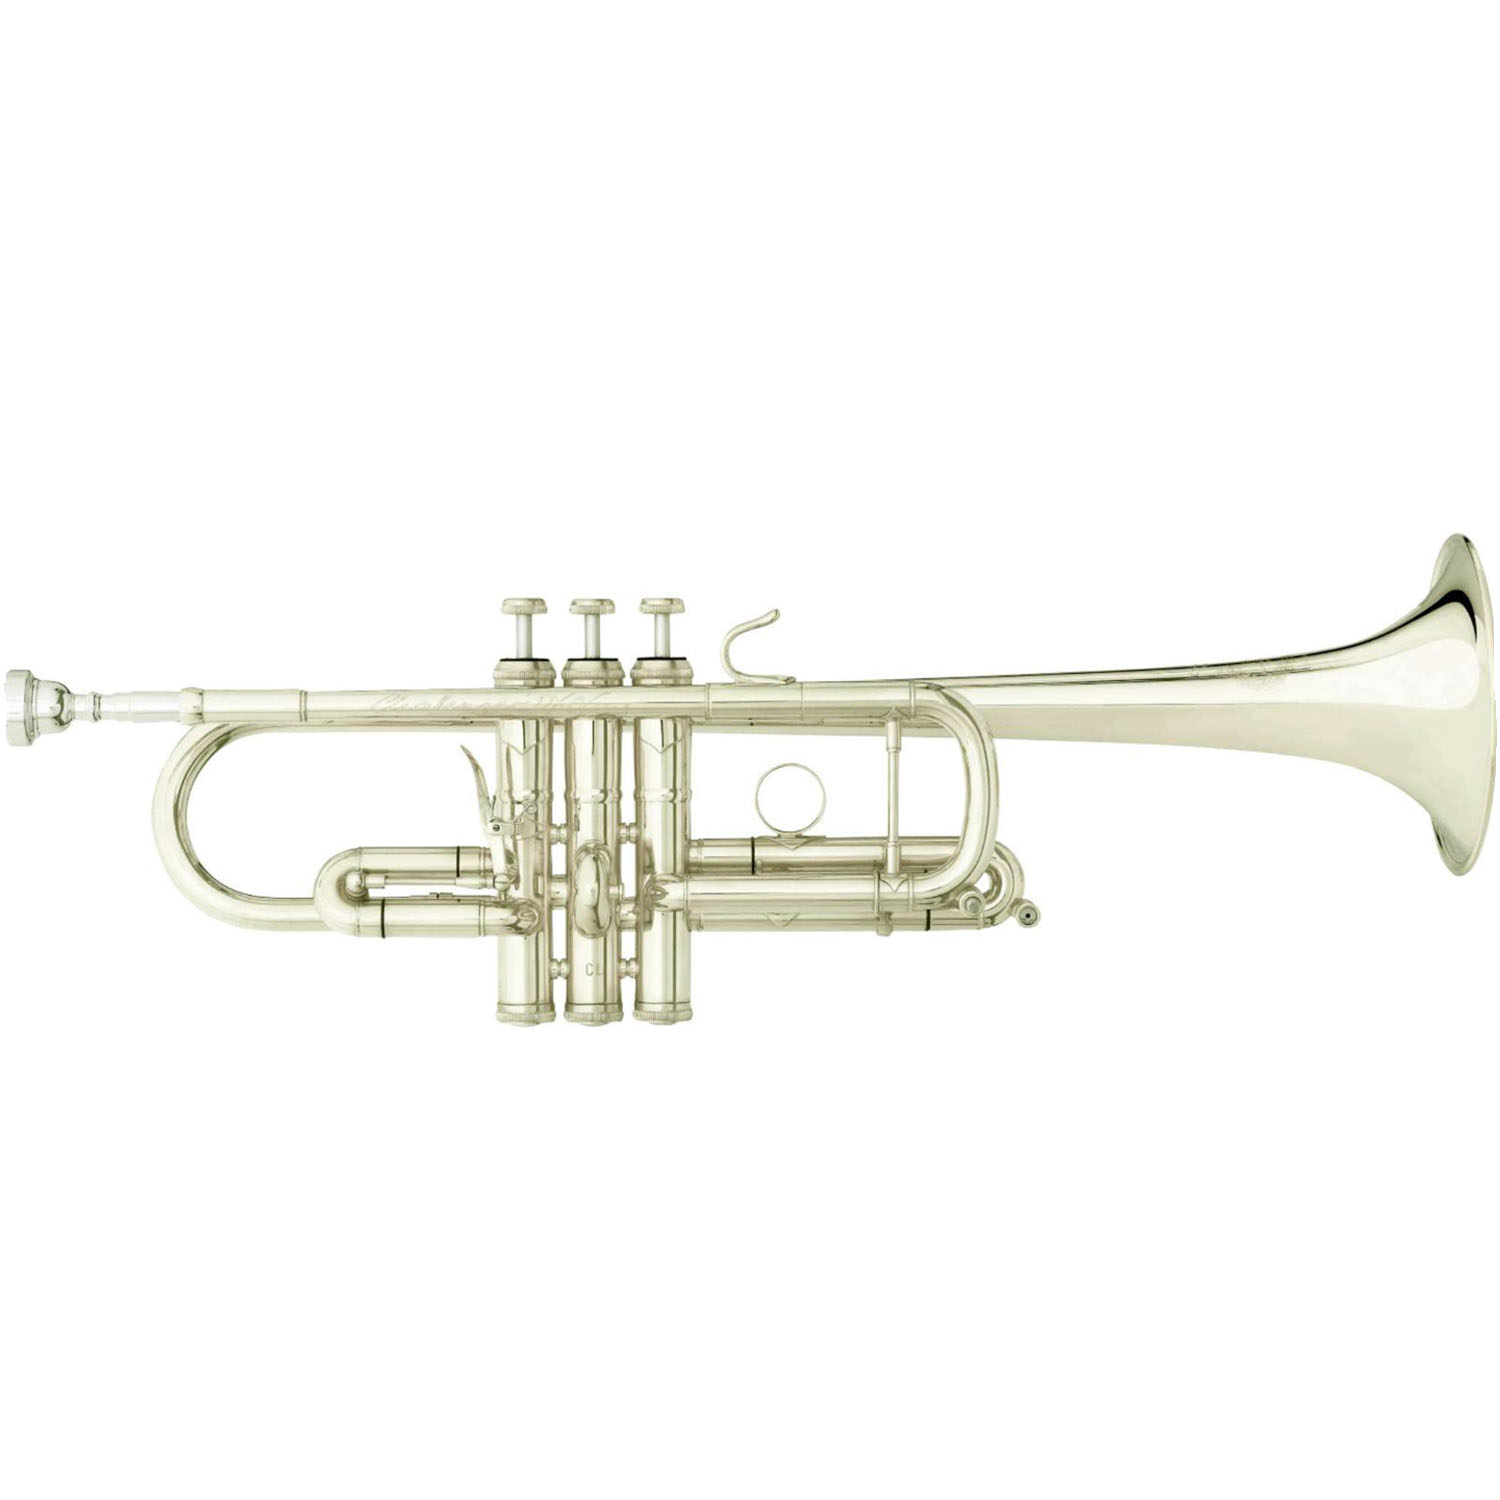 "B&S ""X-Series"" Professional C Trumpet - DCX Model - Fixed Classical Bell"